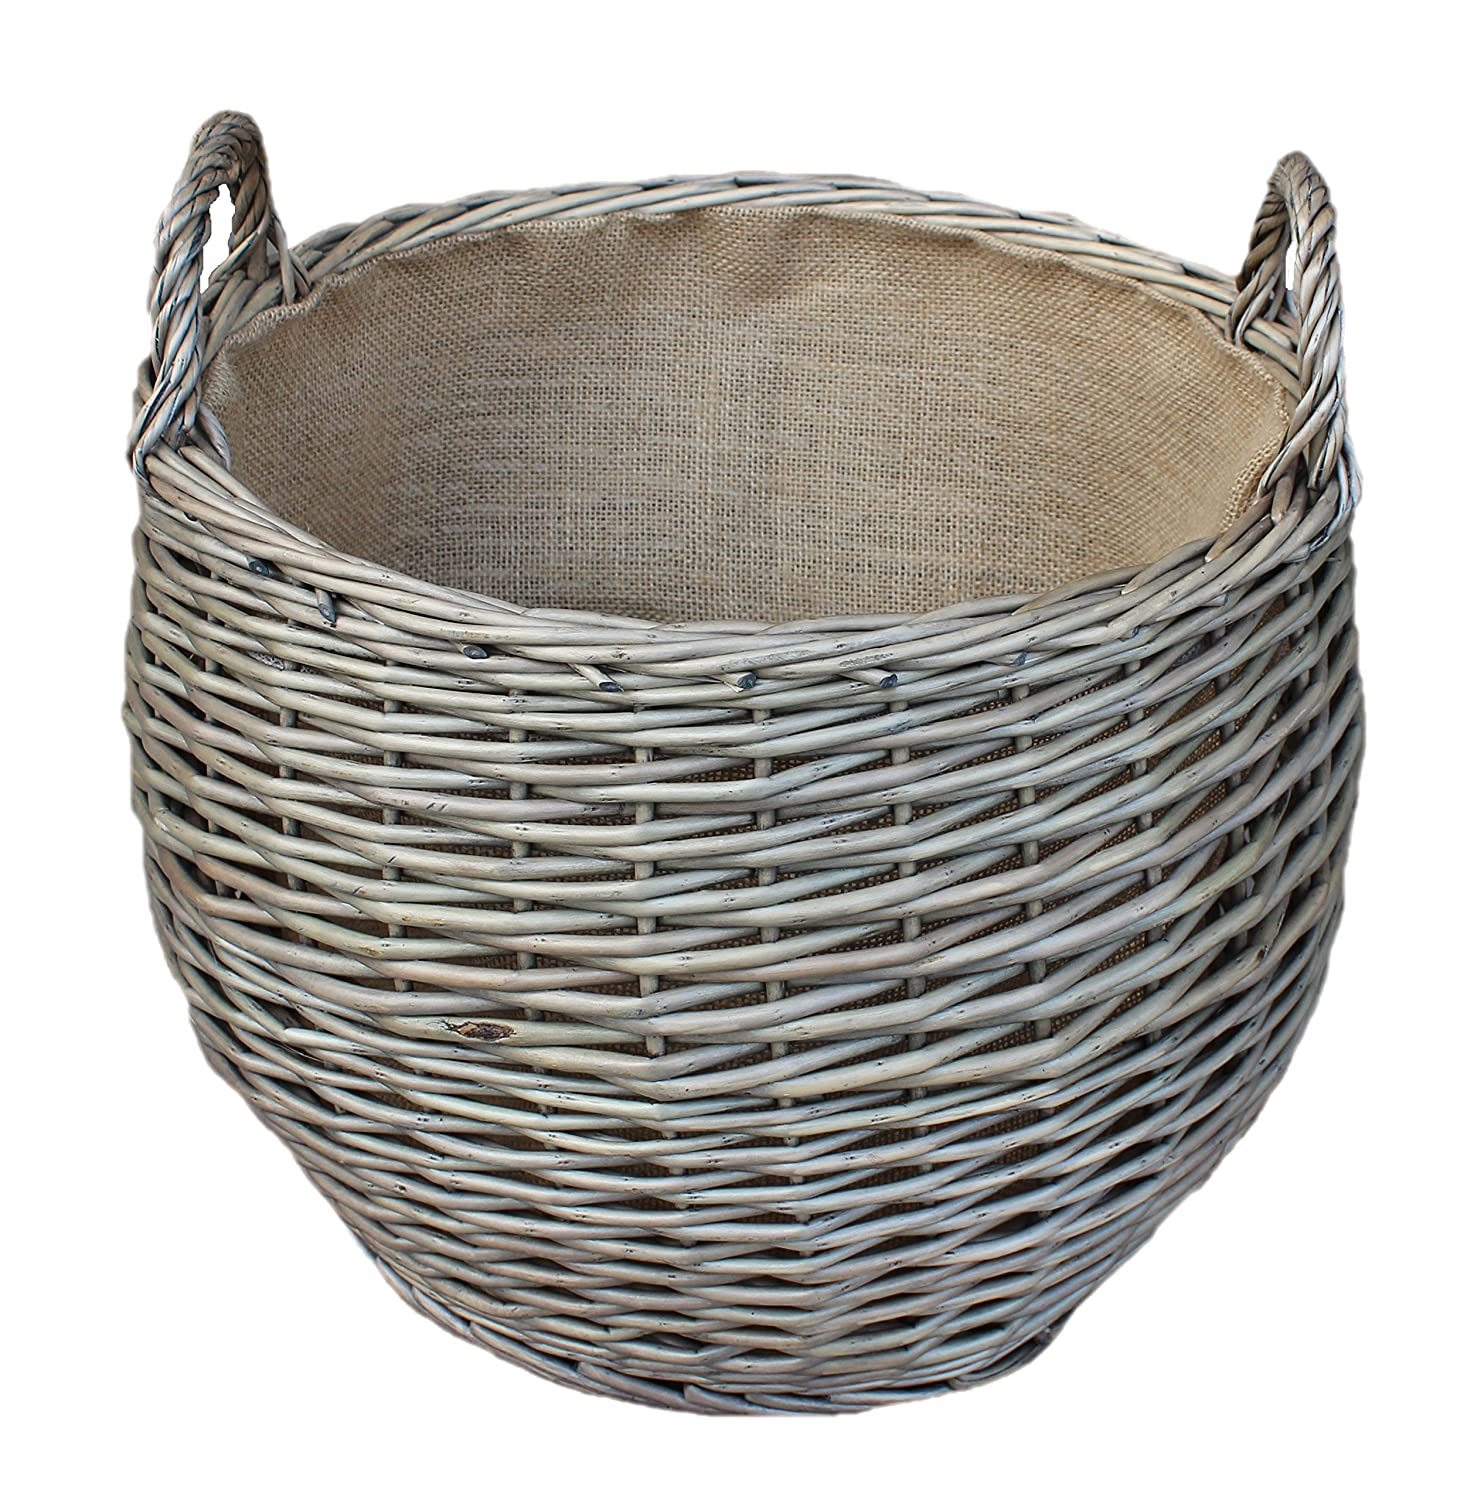 Wicker Stumpy Log Basket Holder Hessian Lined Carry Handles Antique Wash Willow Direct